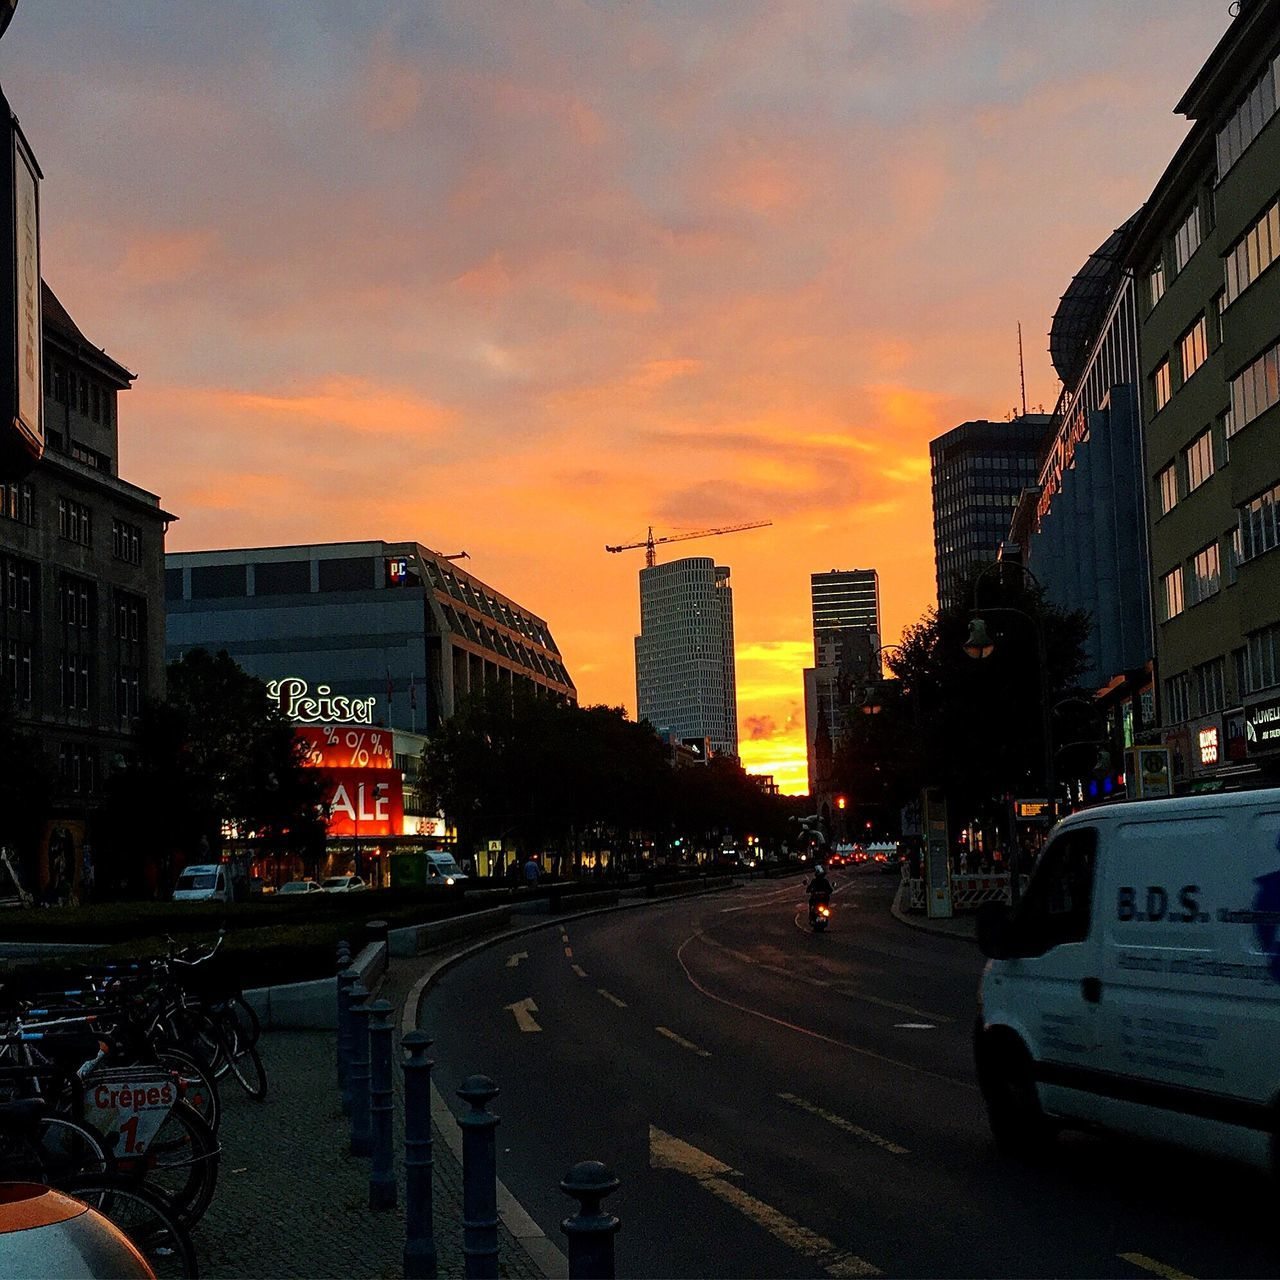 Summer ☀ Sundown EyeEm Gallery Berlinstagram Amazing Yesterday Sonnenuntergang Berlin Picoftheday IPhoneography Wittenbergplatz Europe Berliner Ansichten Waldorf Astoria Berlin Kudamm